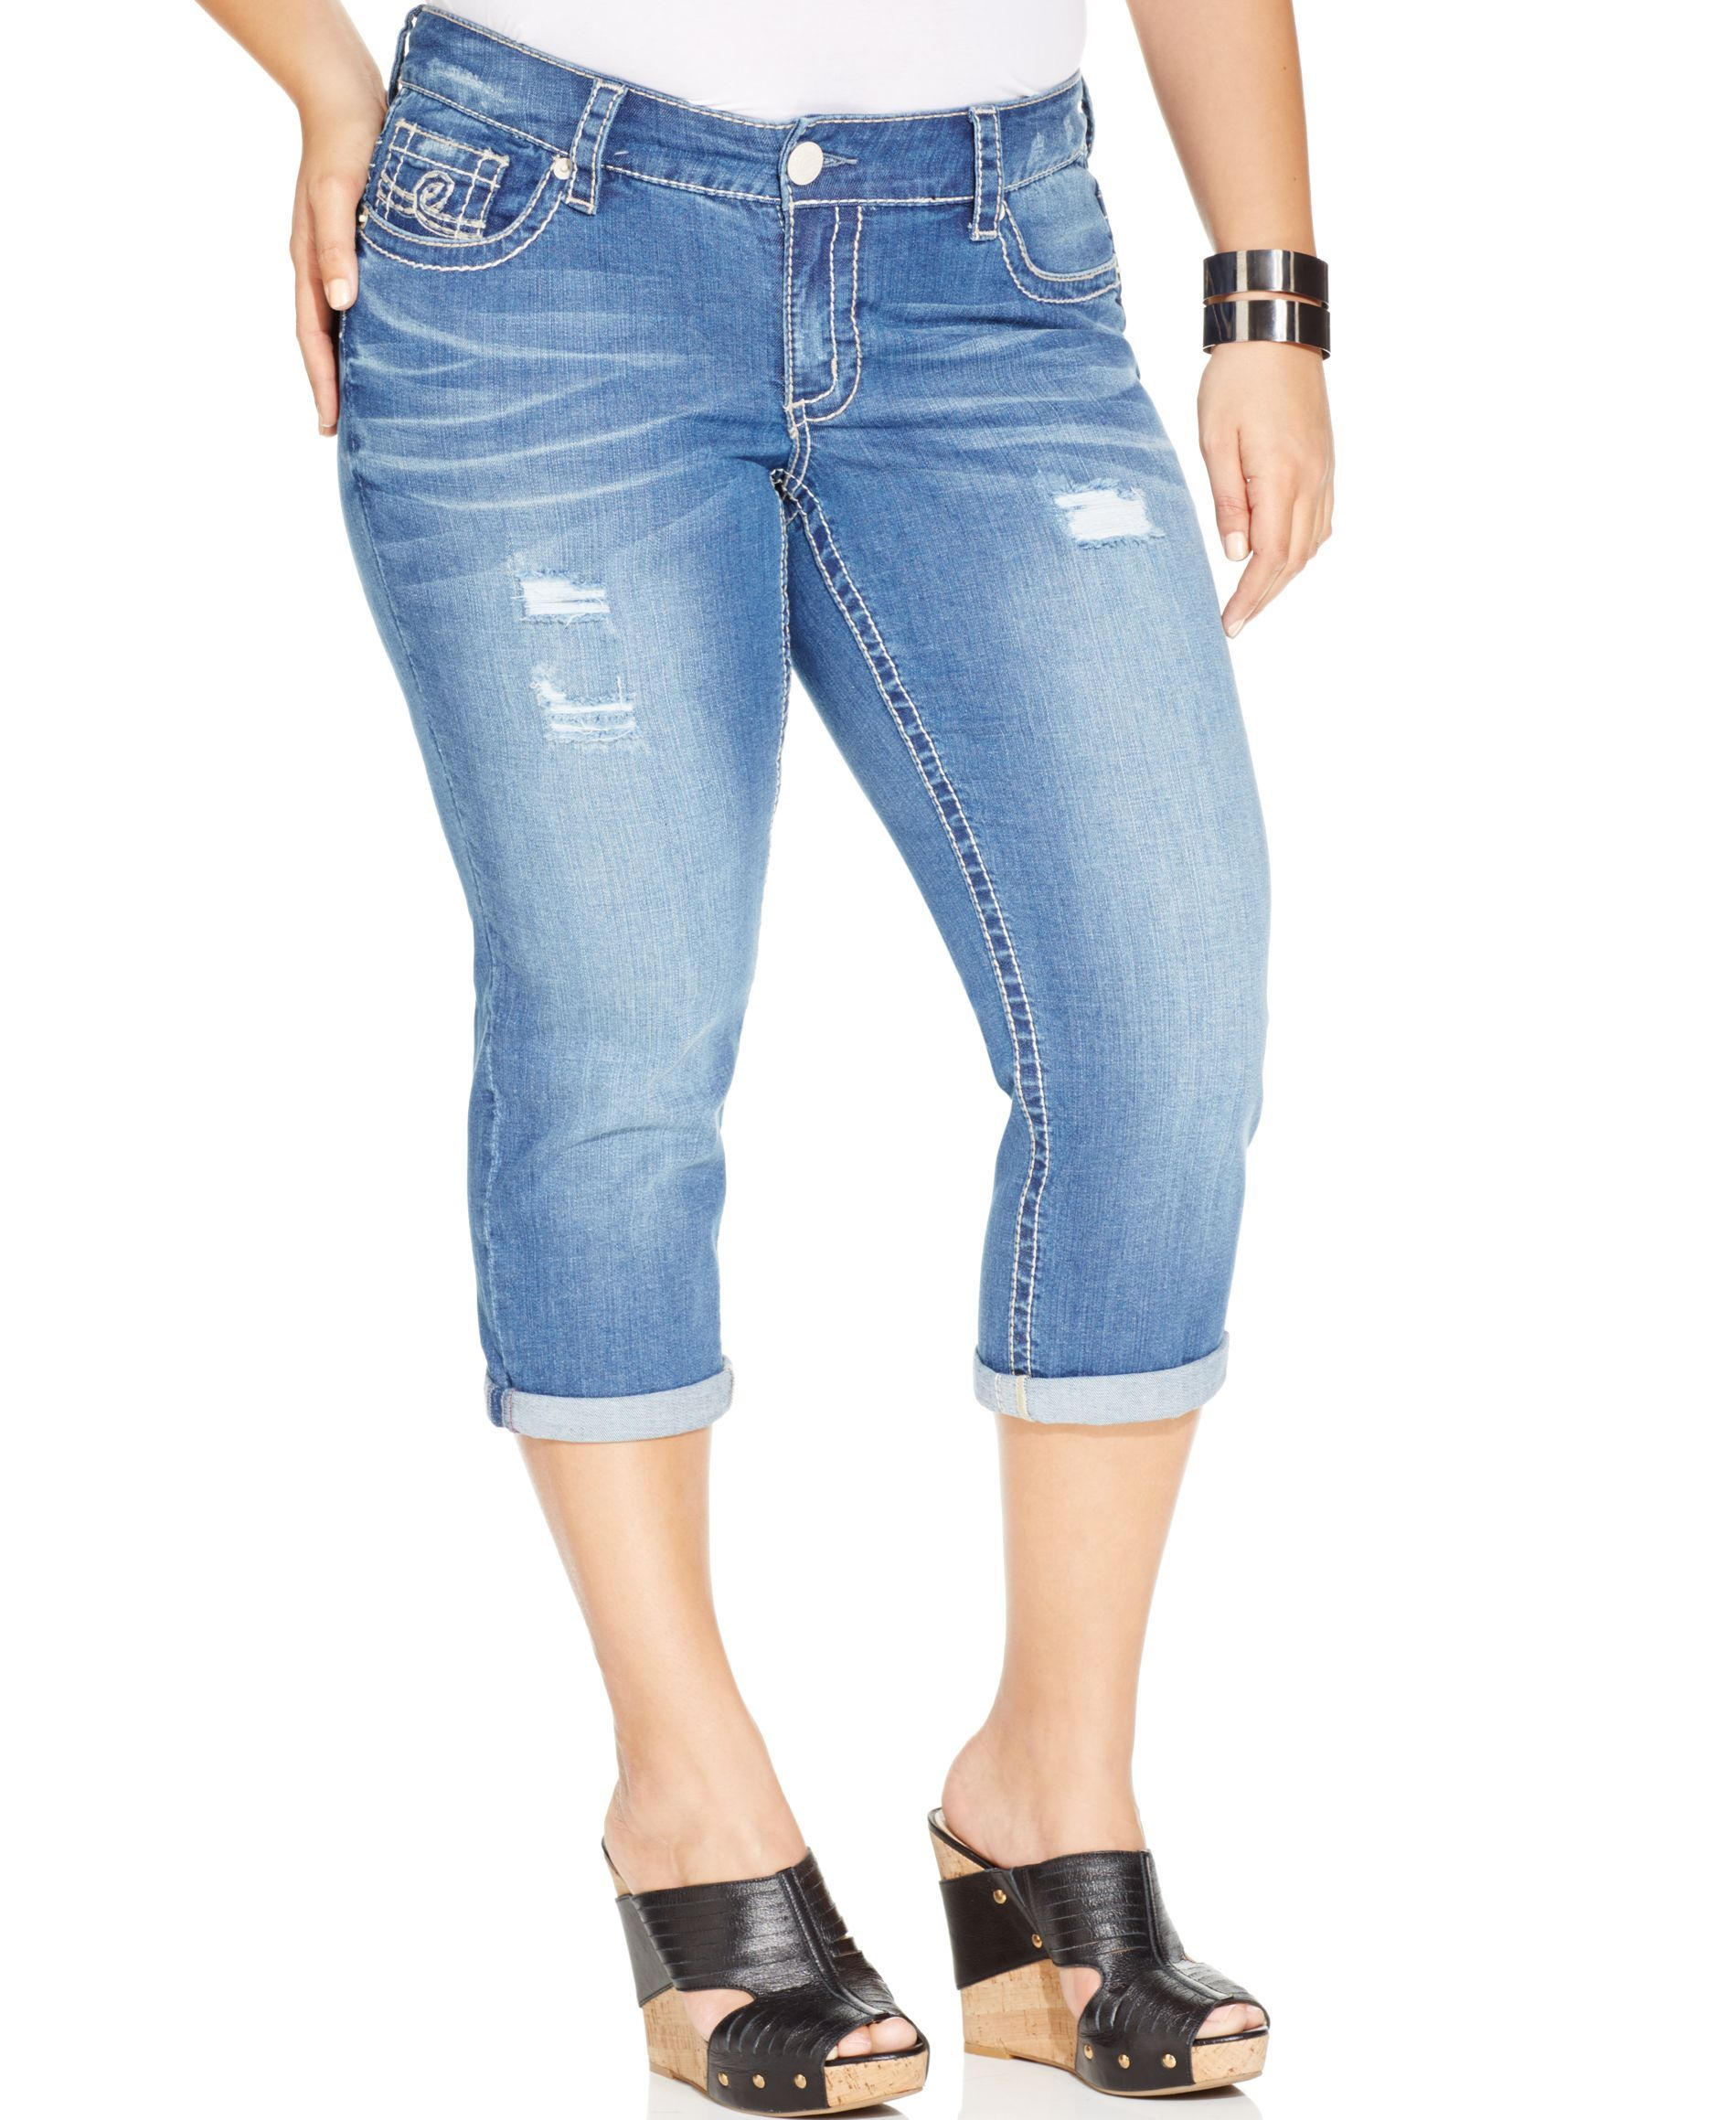 82557c97a2d Seven7 Jeans Plus Size Distressed Cropped Jeans